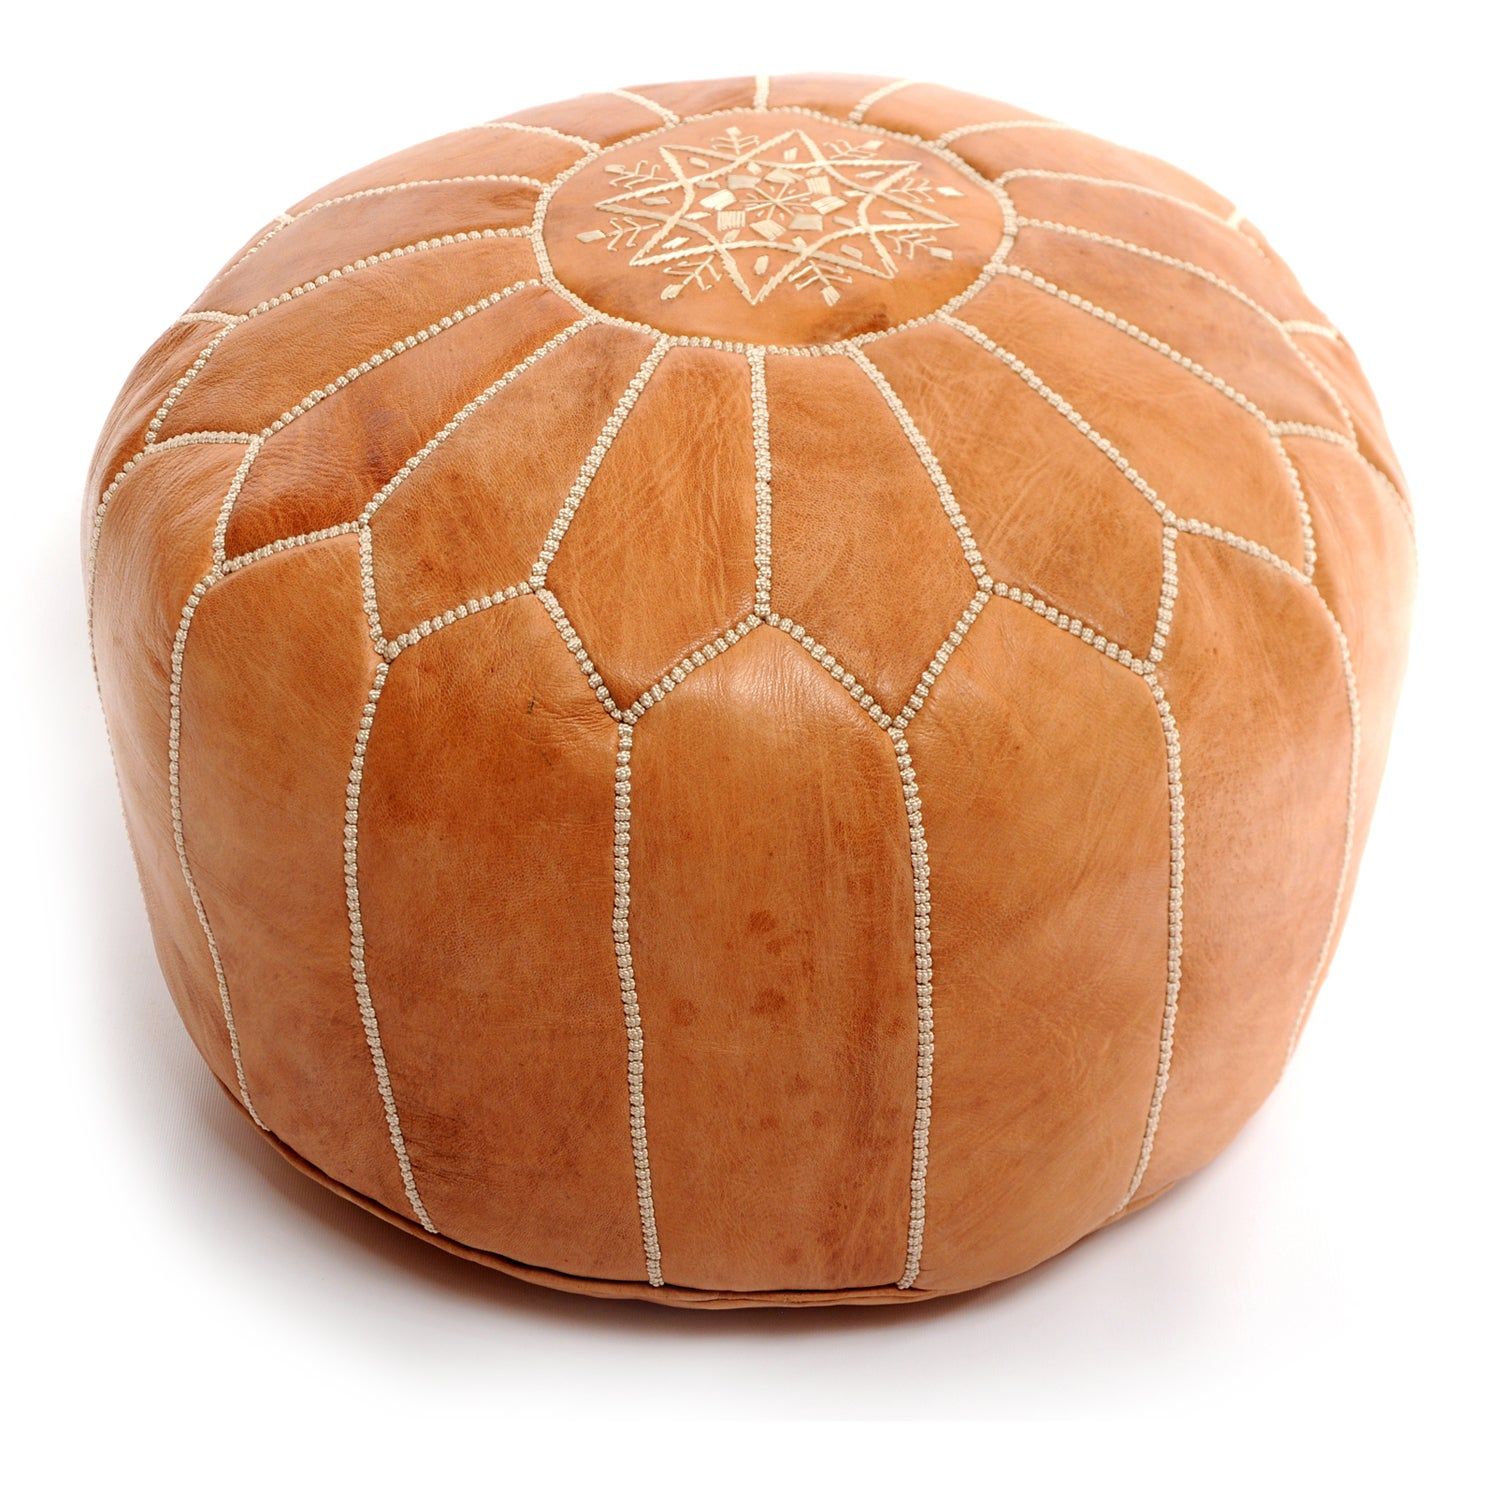 Handmade Moroccan Leather Pouf Authentic Ottoman (Morocco)